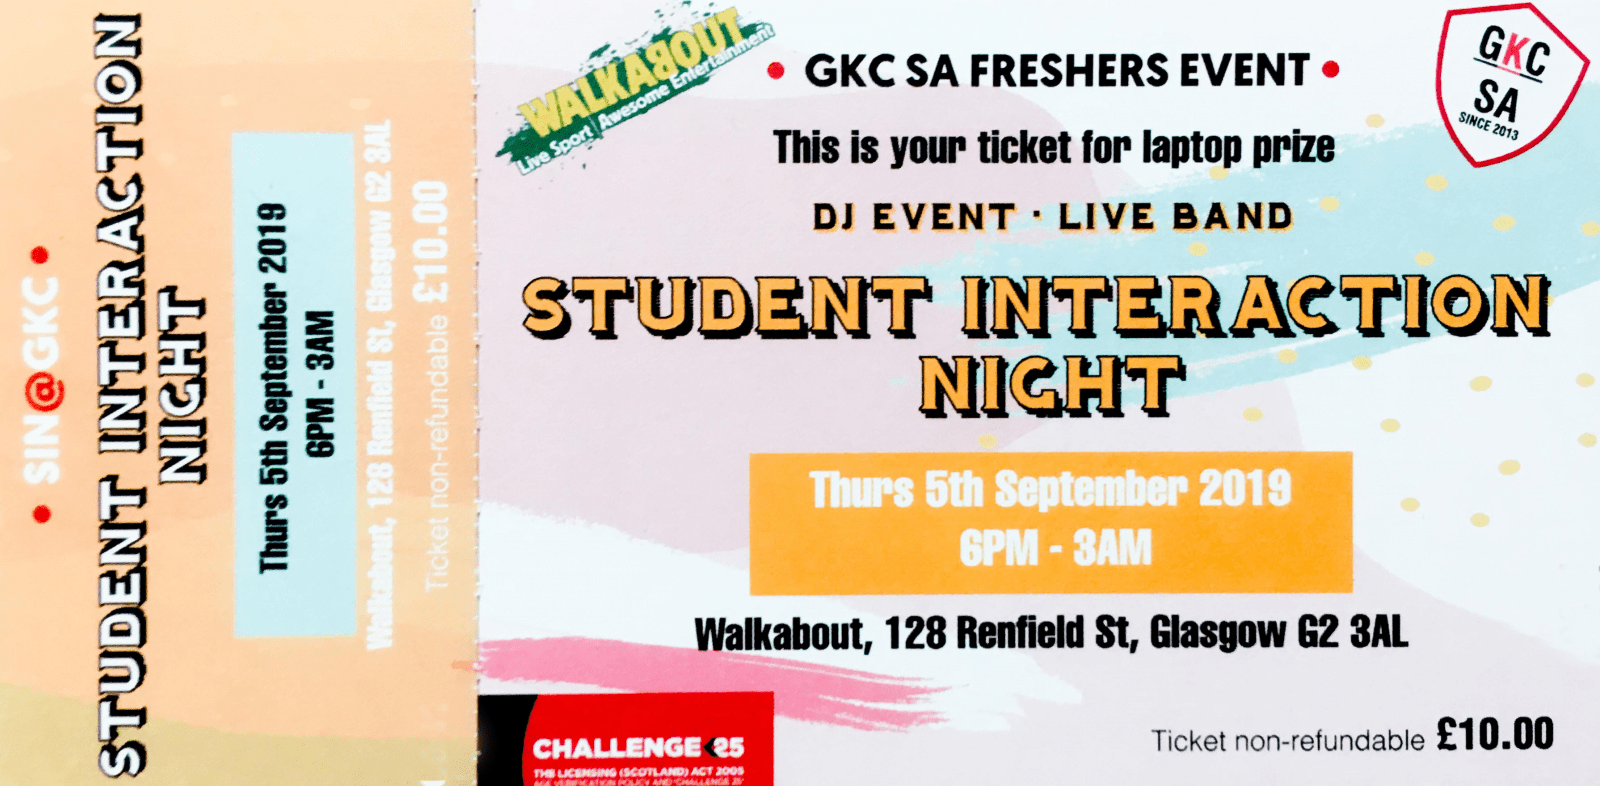 Freshers event ticket